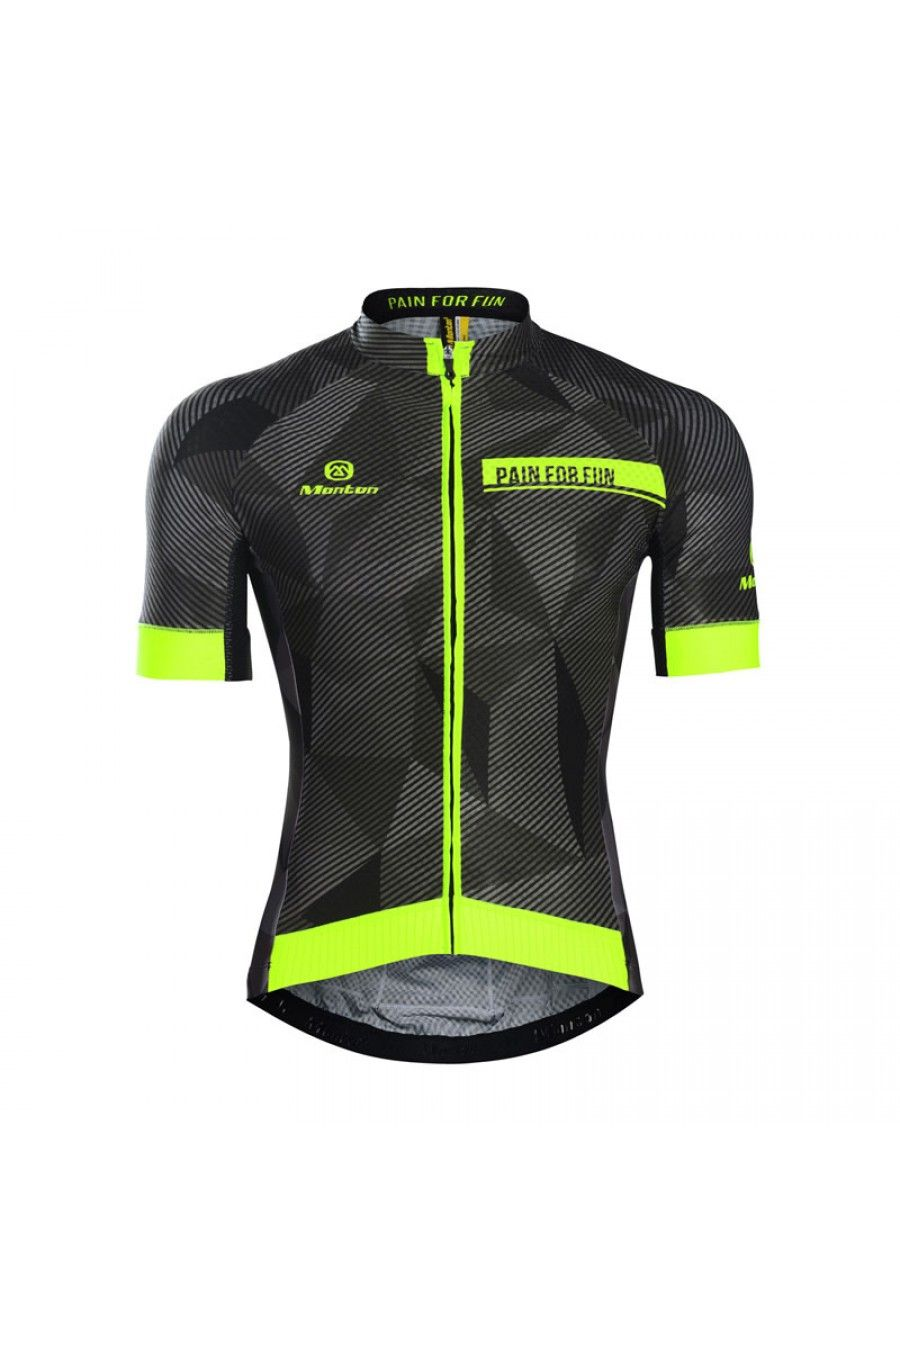 d009c50cd Monton Cycling Official - Custom Cycling Apparel Manufacturer